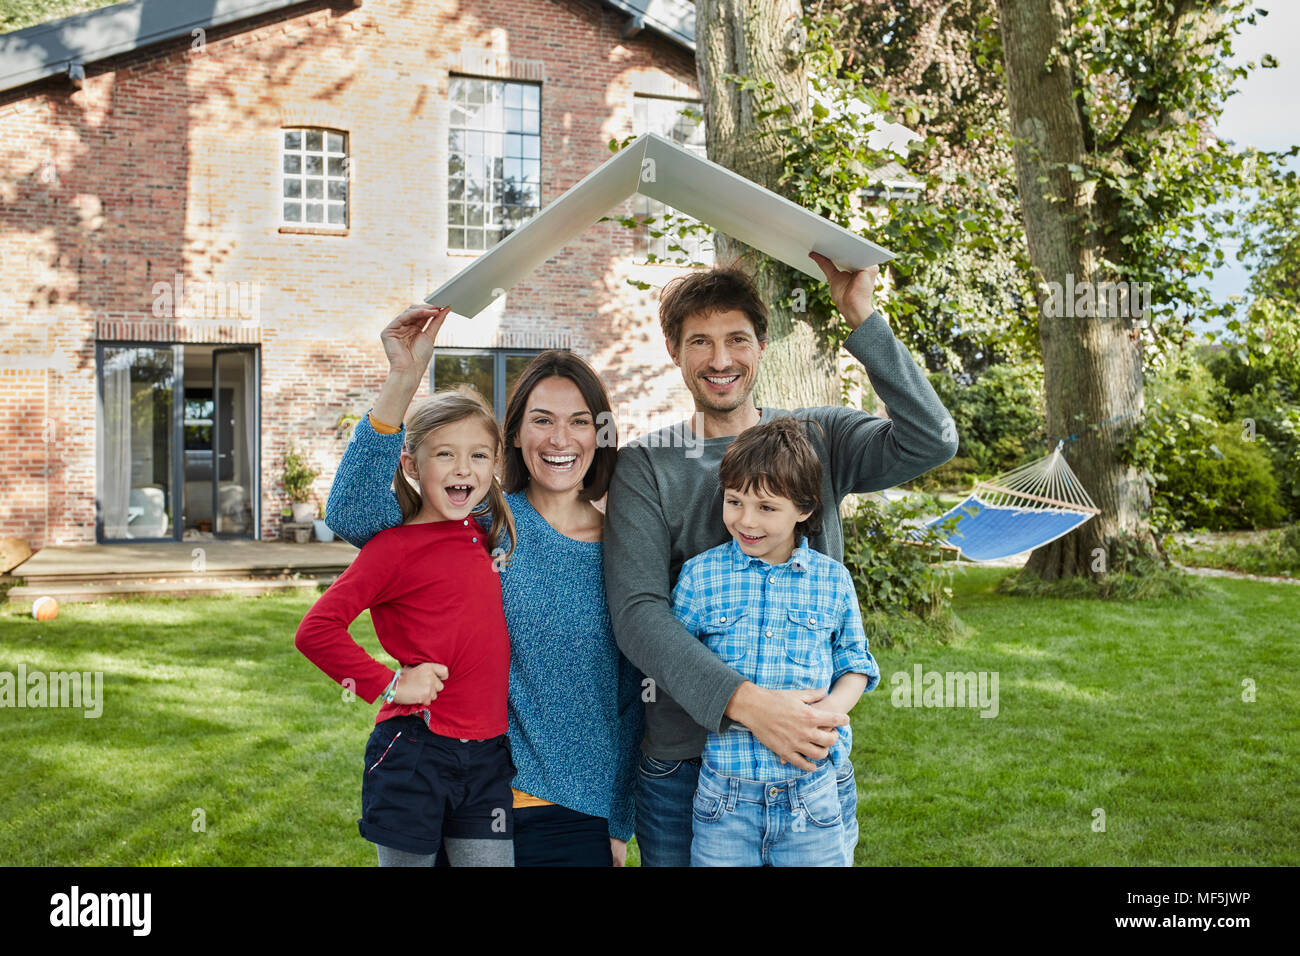 Portrait of happy family in garden of their home holding roof - Stock Image